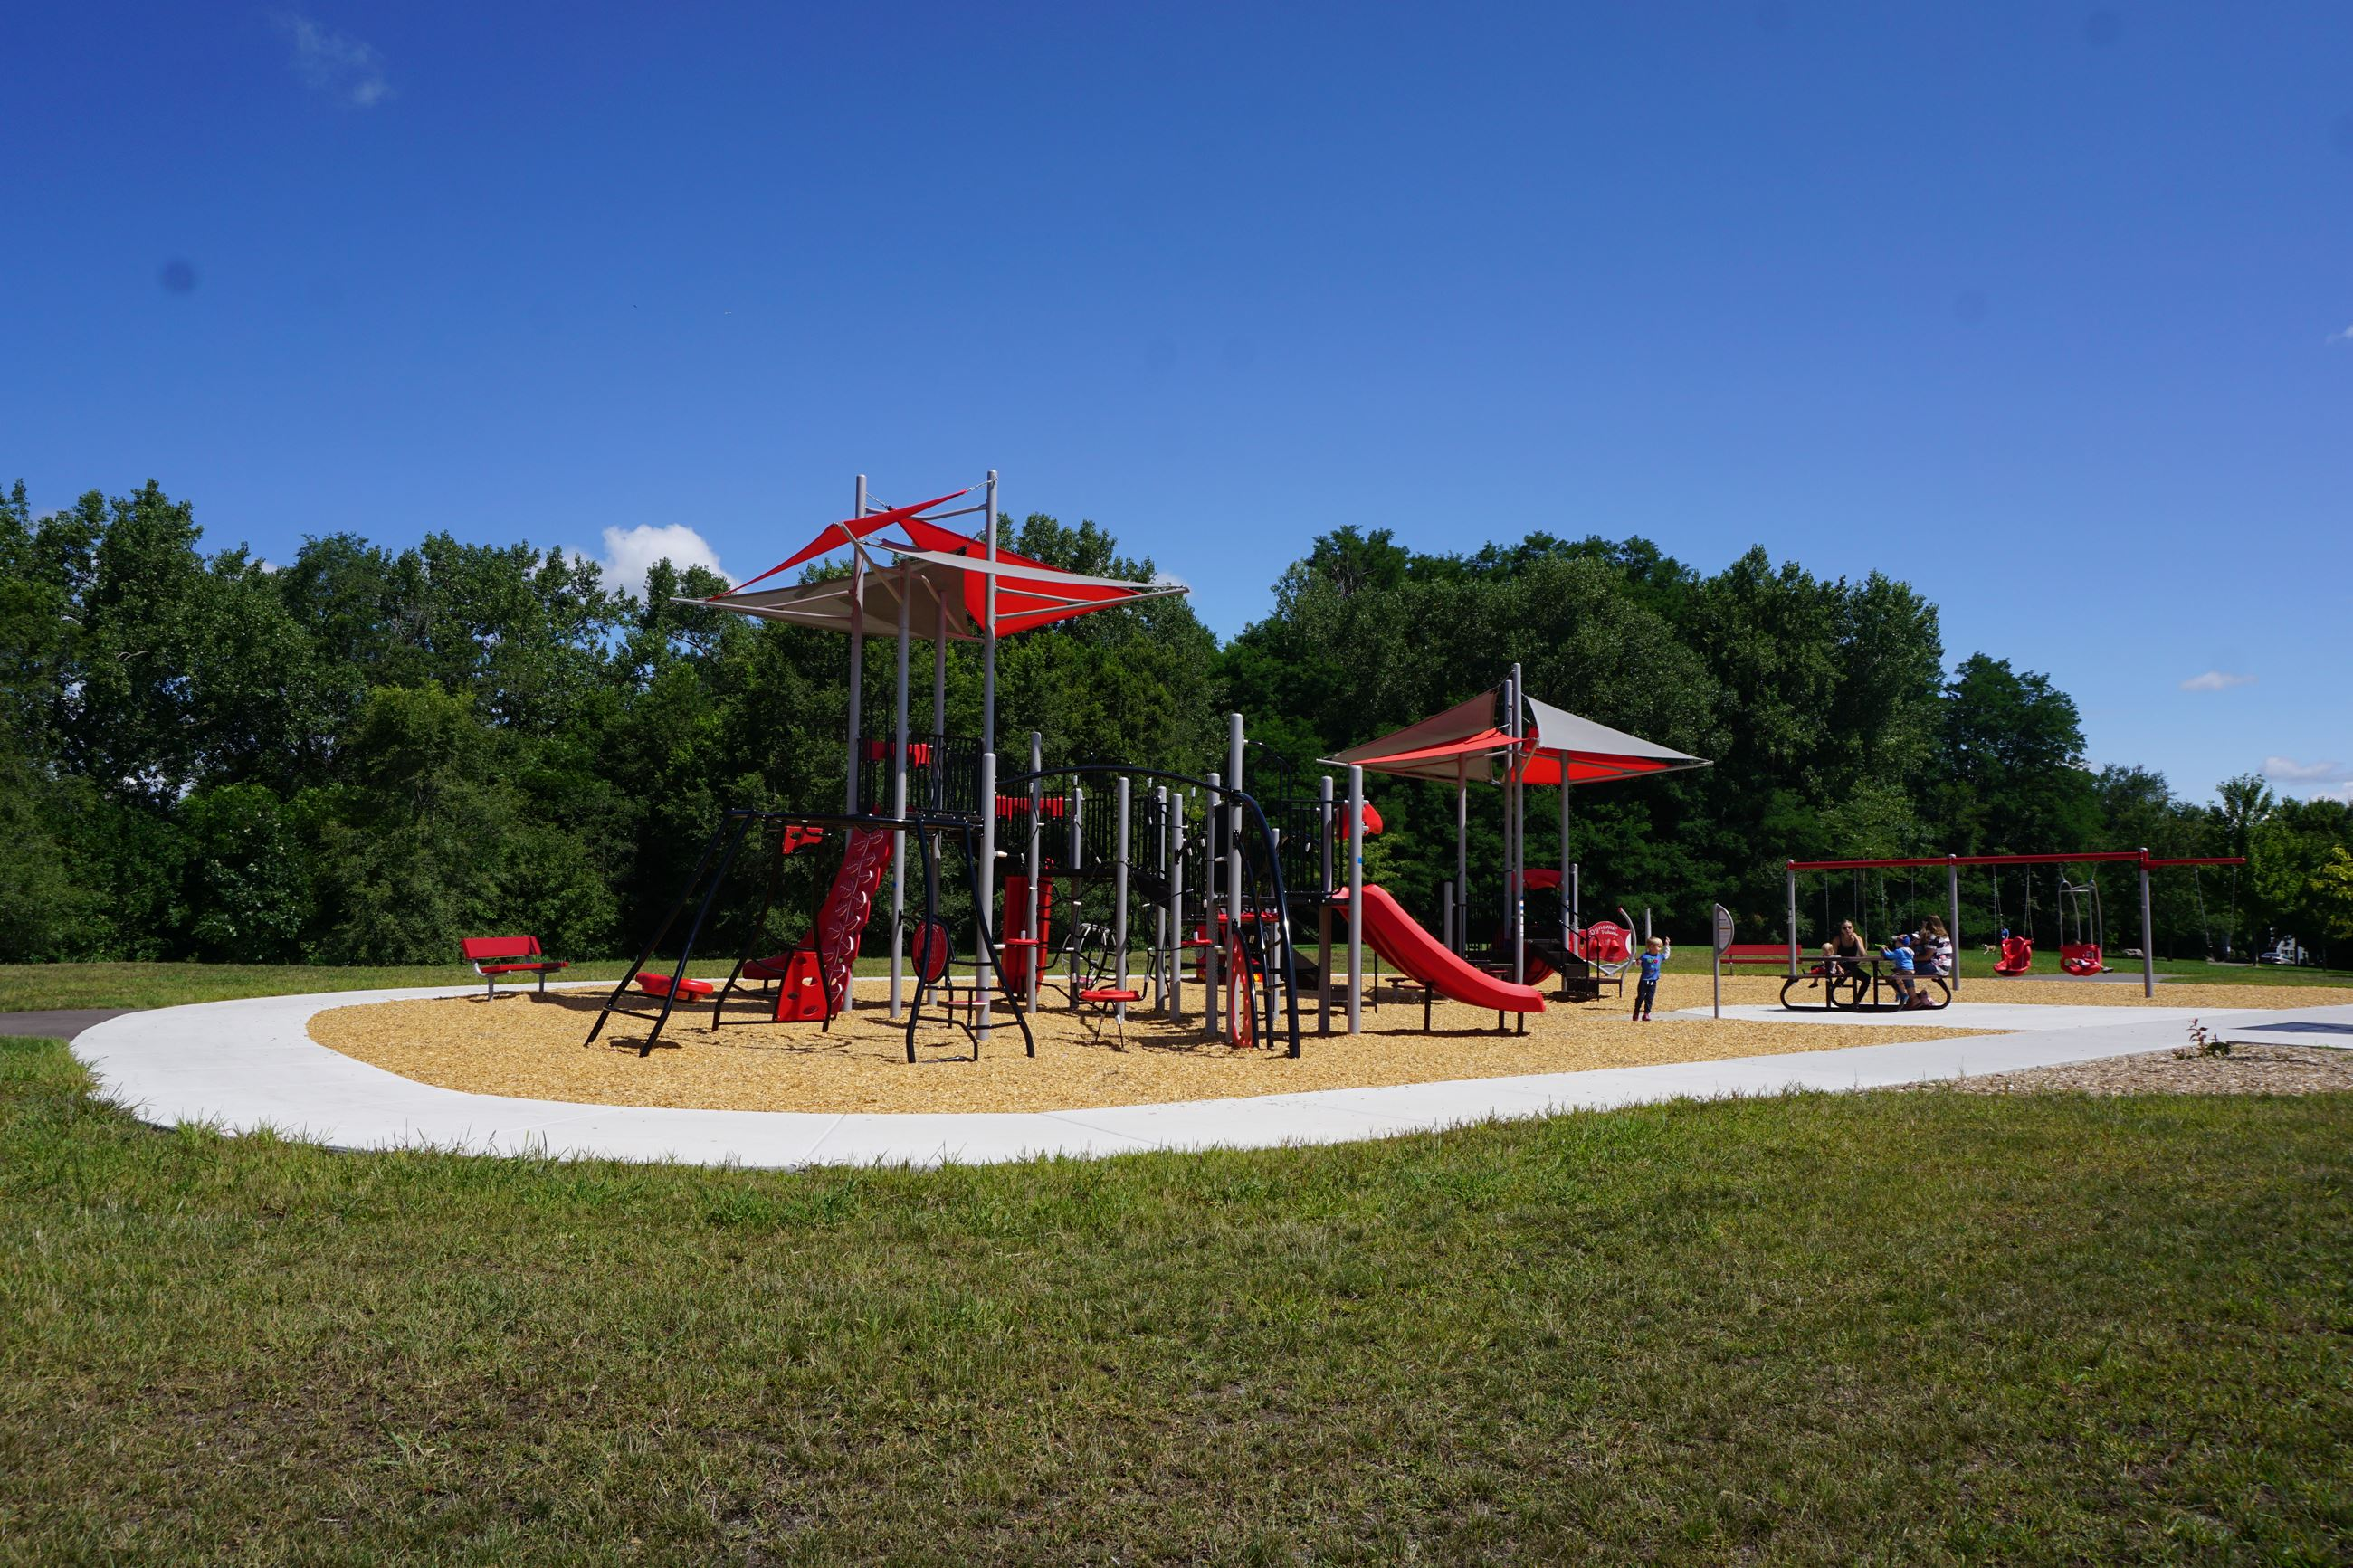 seidls lake playground